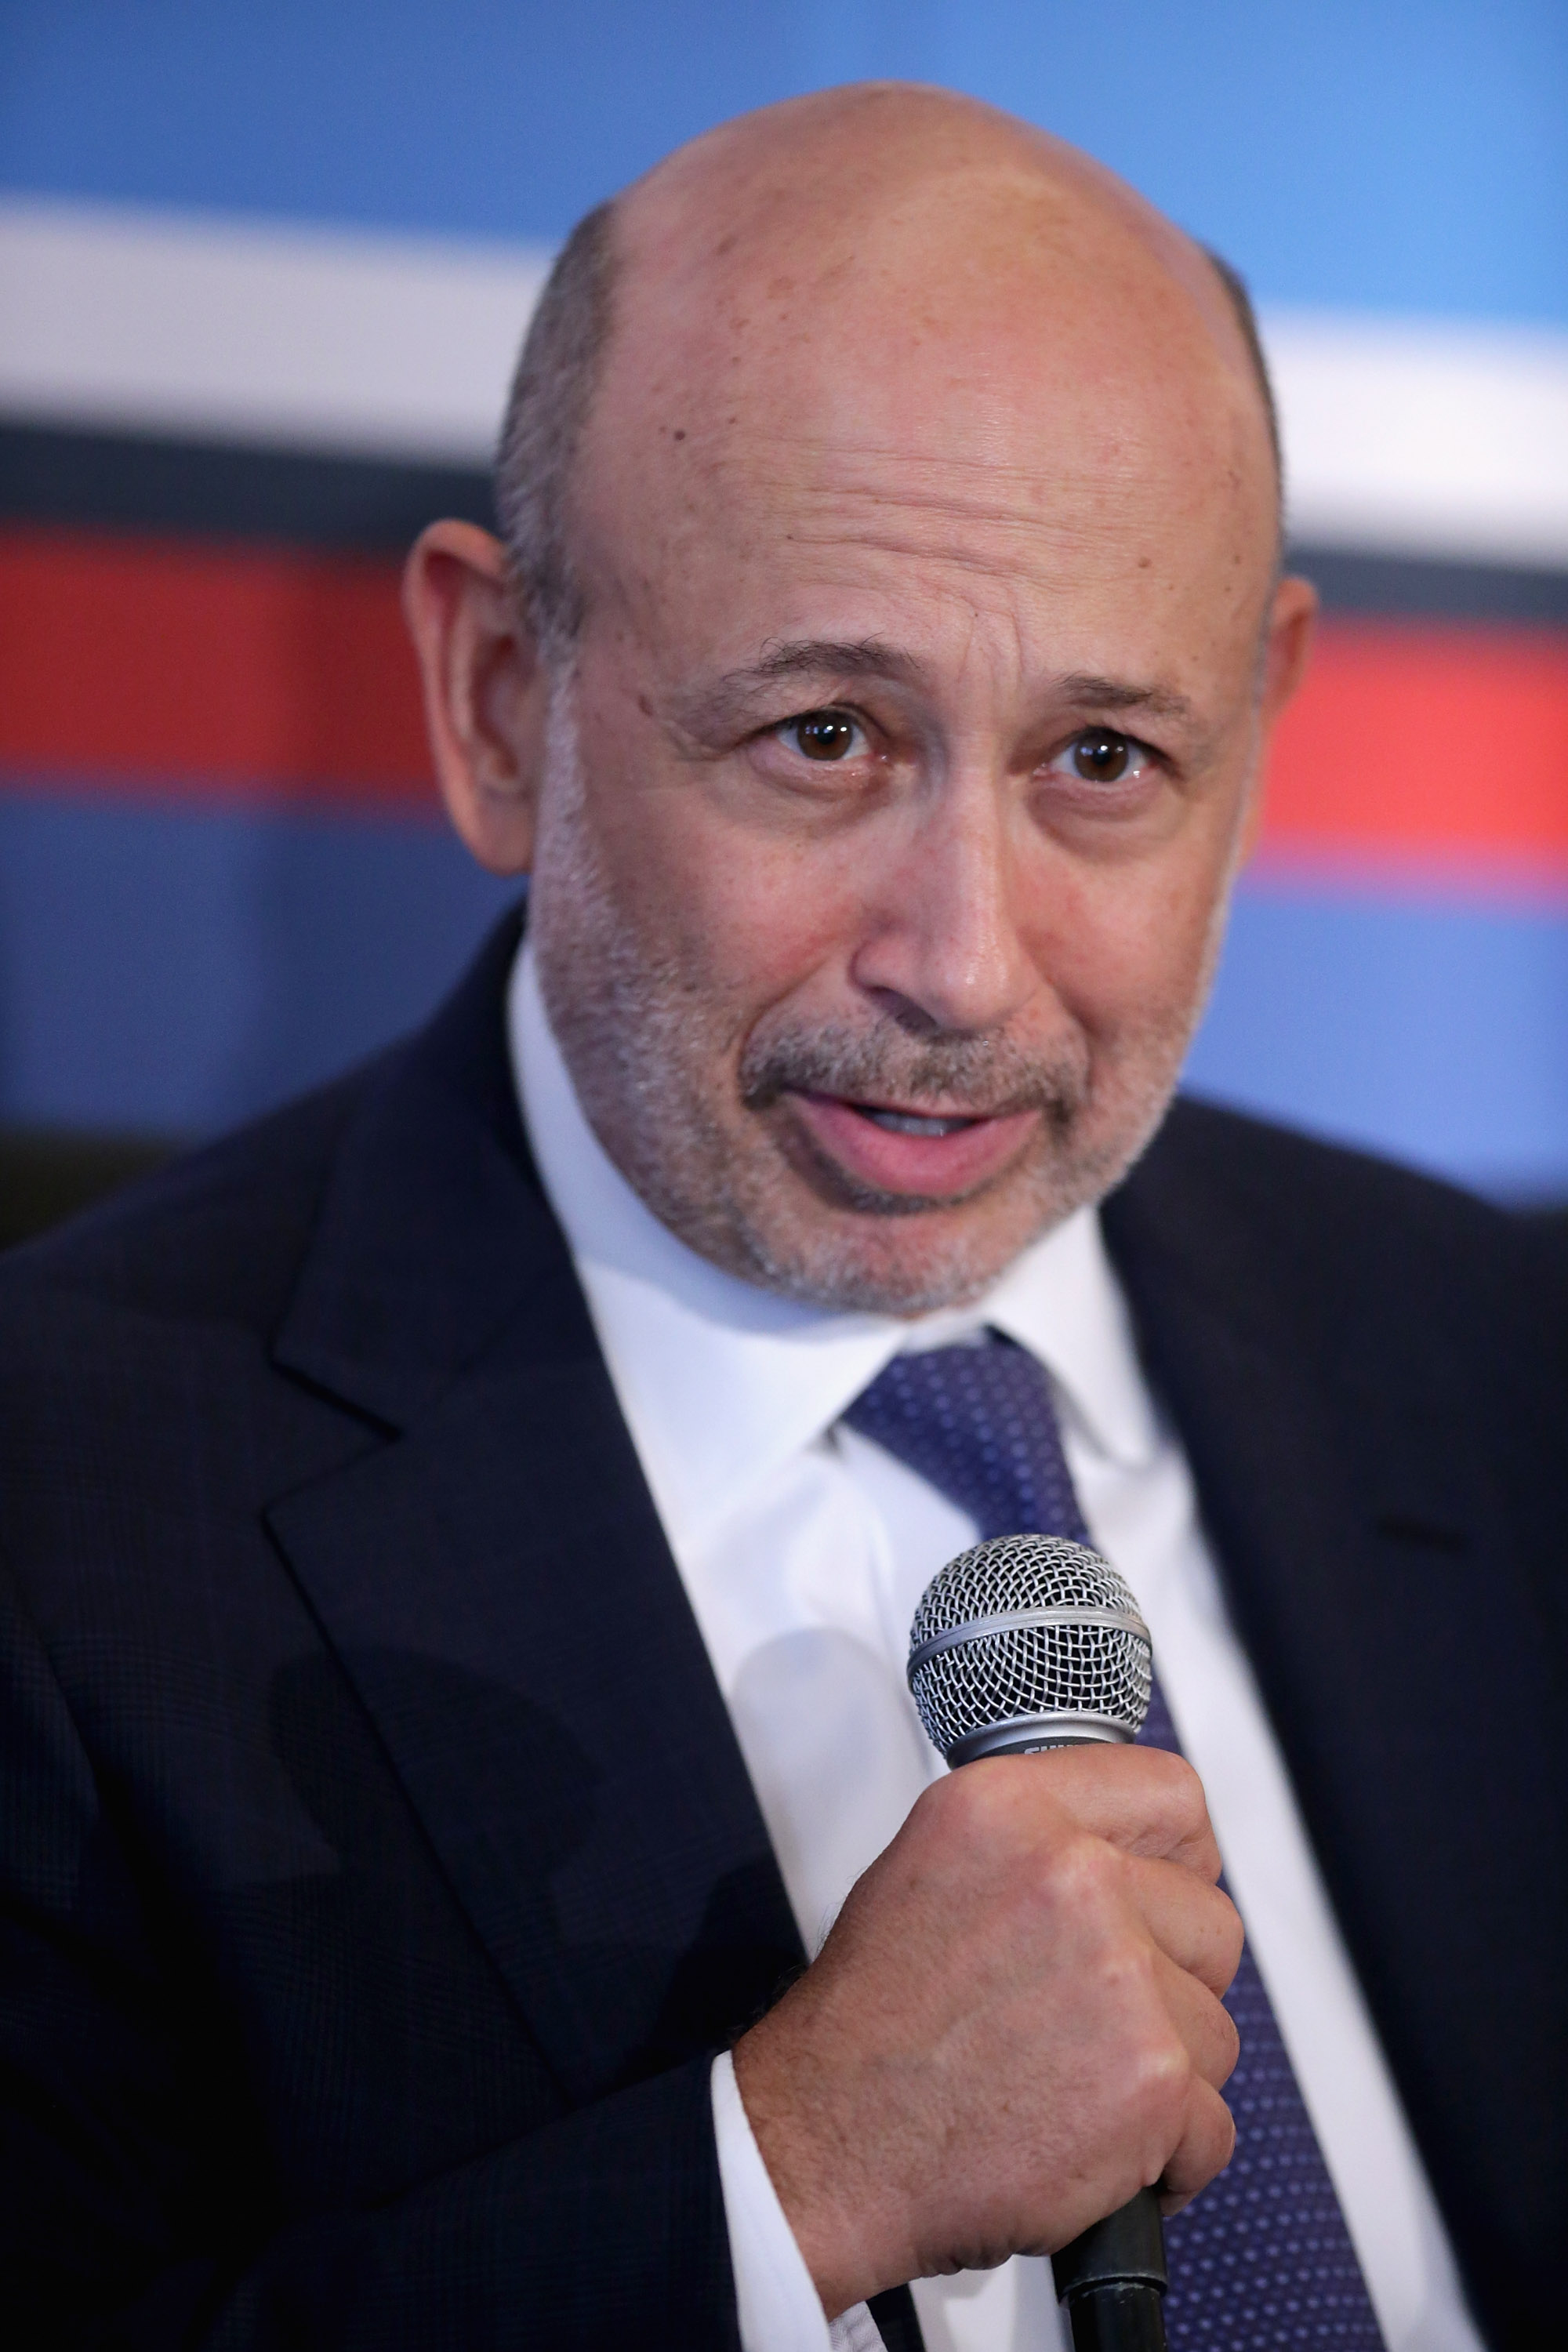 Goldman Sachs Chairman and CEO Lloyd Blankfein participates in a panel discussion on 'Talent Attraction and Retention' during the White House Summit On Working Families at the Omni Shoreham hotel June 23, 2014 in Washington, DC.